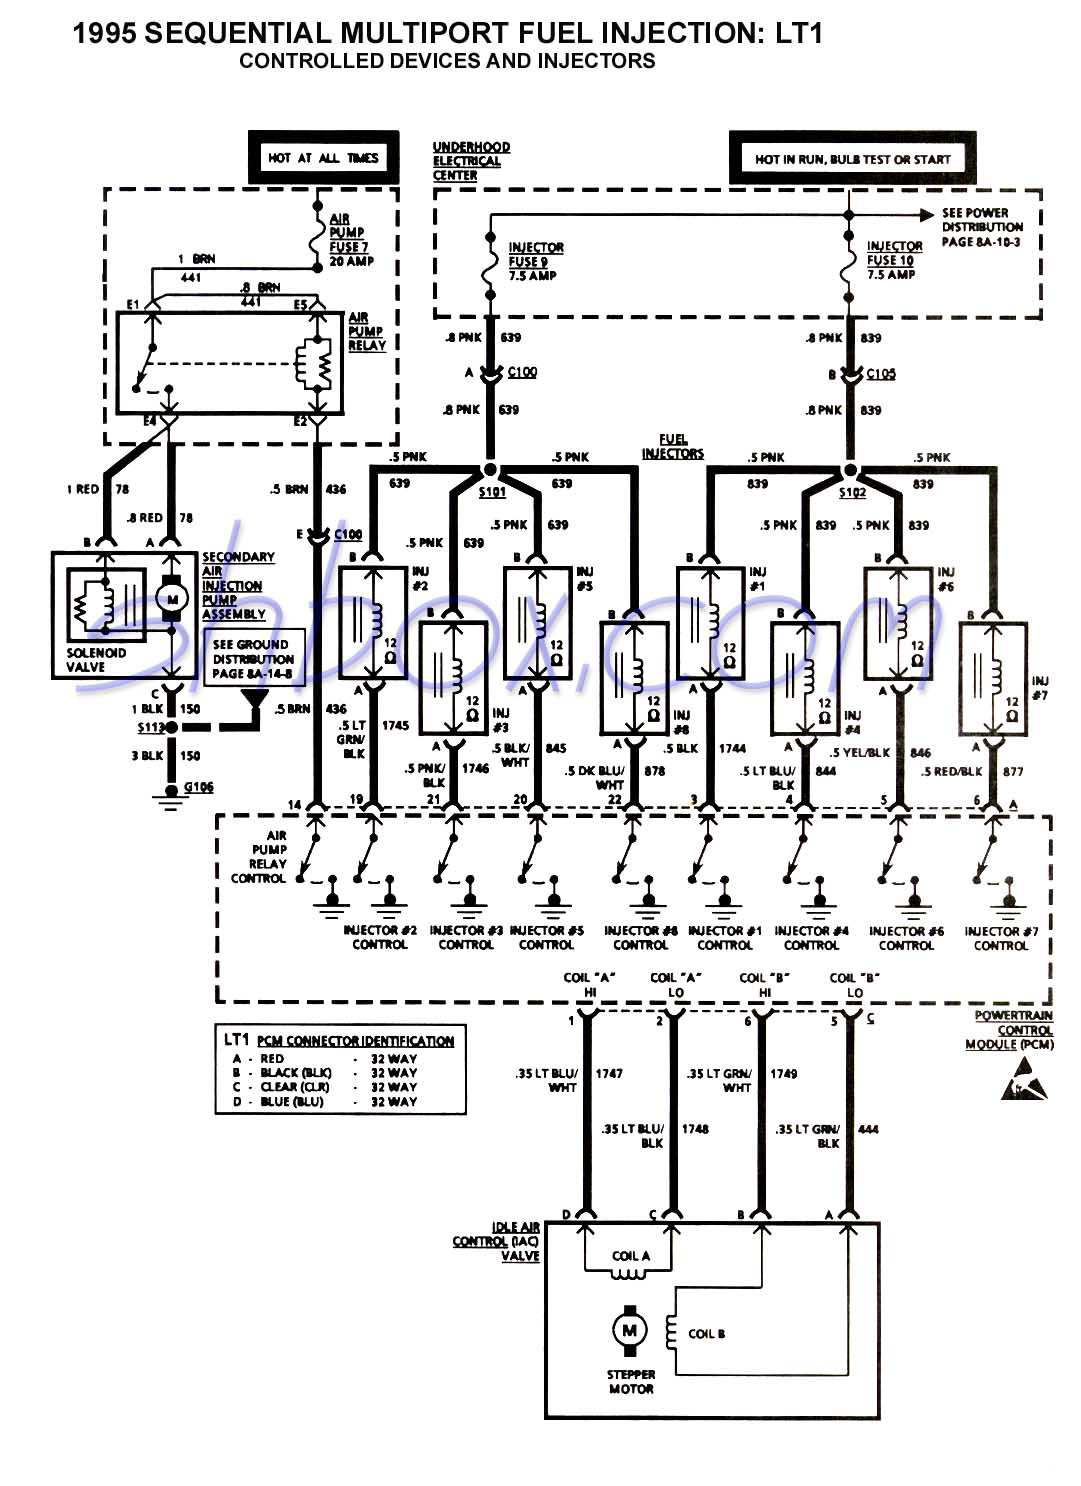 hight resolution of 2000 grand am fuel pump wiring diagram free download wiring diagrams 2000 grand am fuel pump